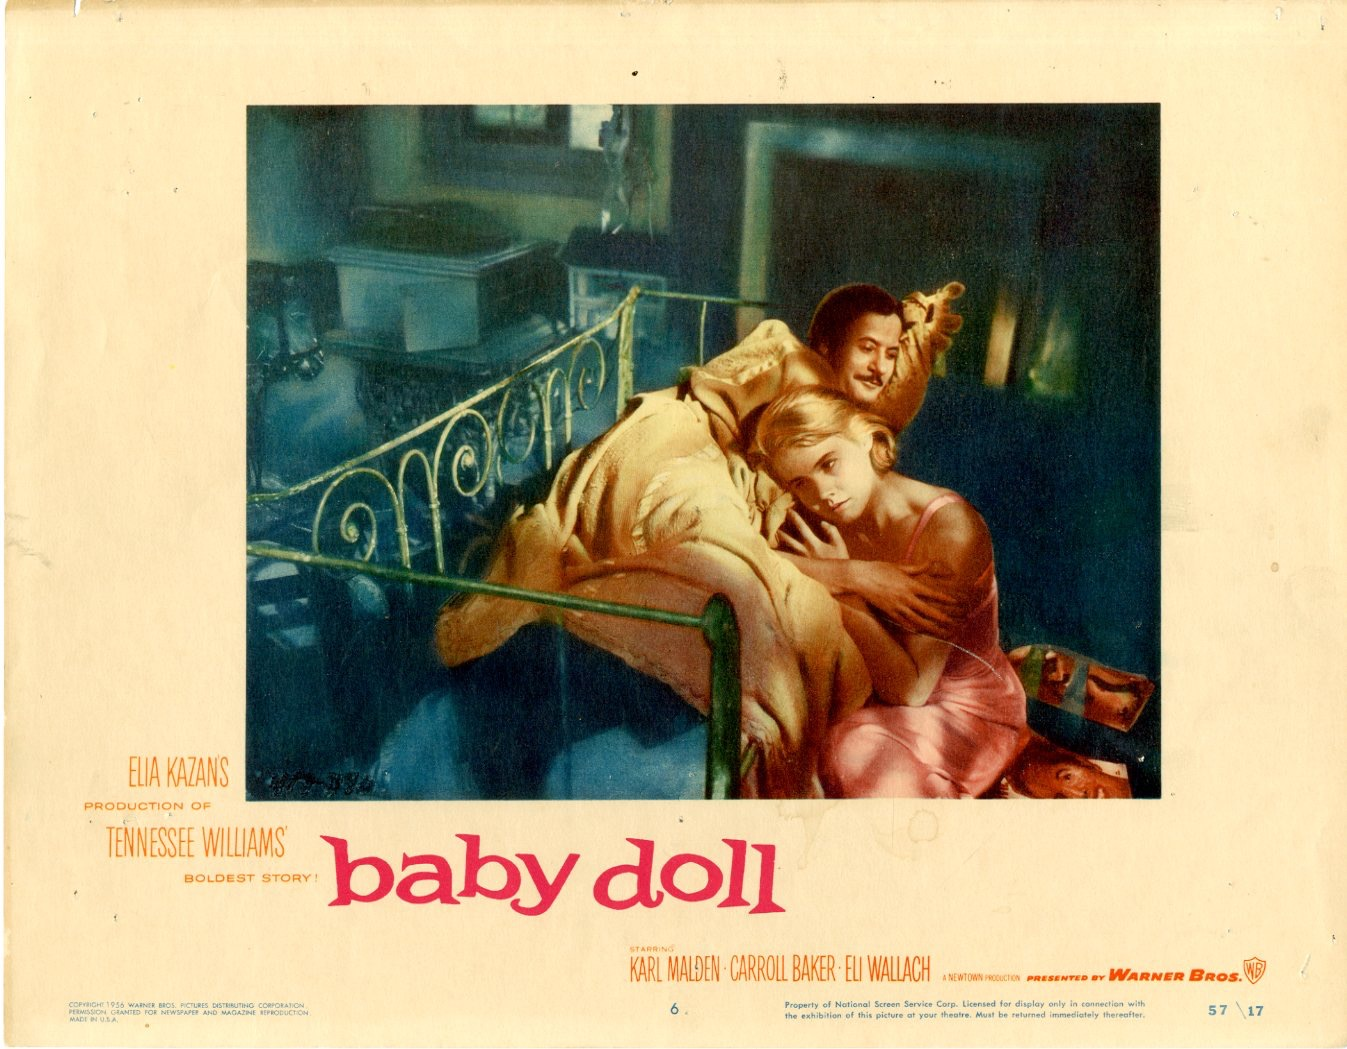 a plot summary of the story of baby doll 'baby doll' tells the heartbreaking and astonishing story of lily riser and her daughter sky, who have been held captive by the evil rick hanson for 8 years one night, rick hanson leaves the door to their cell unlocked, and they manage to escape.